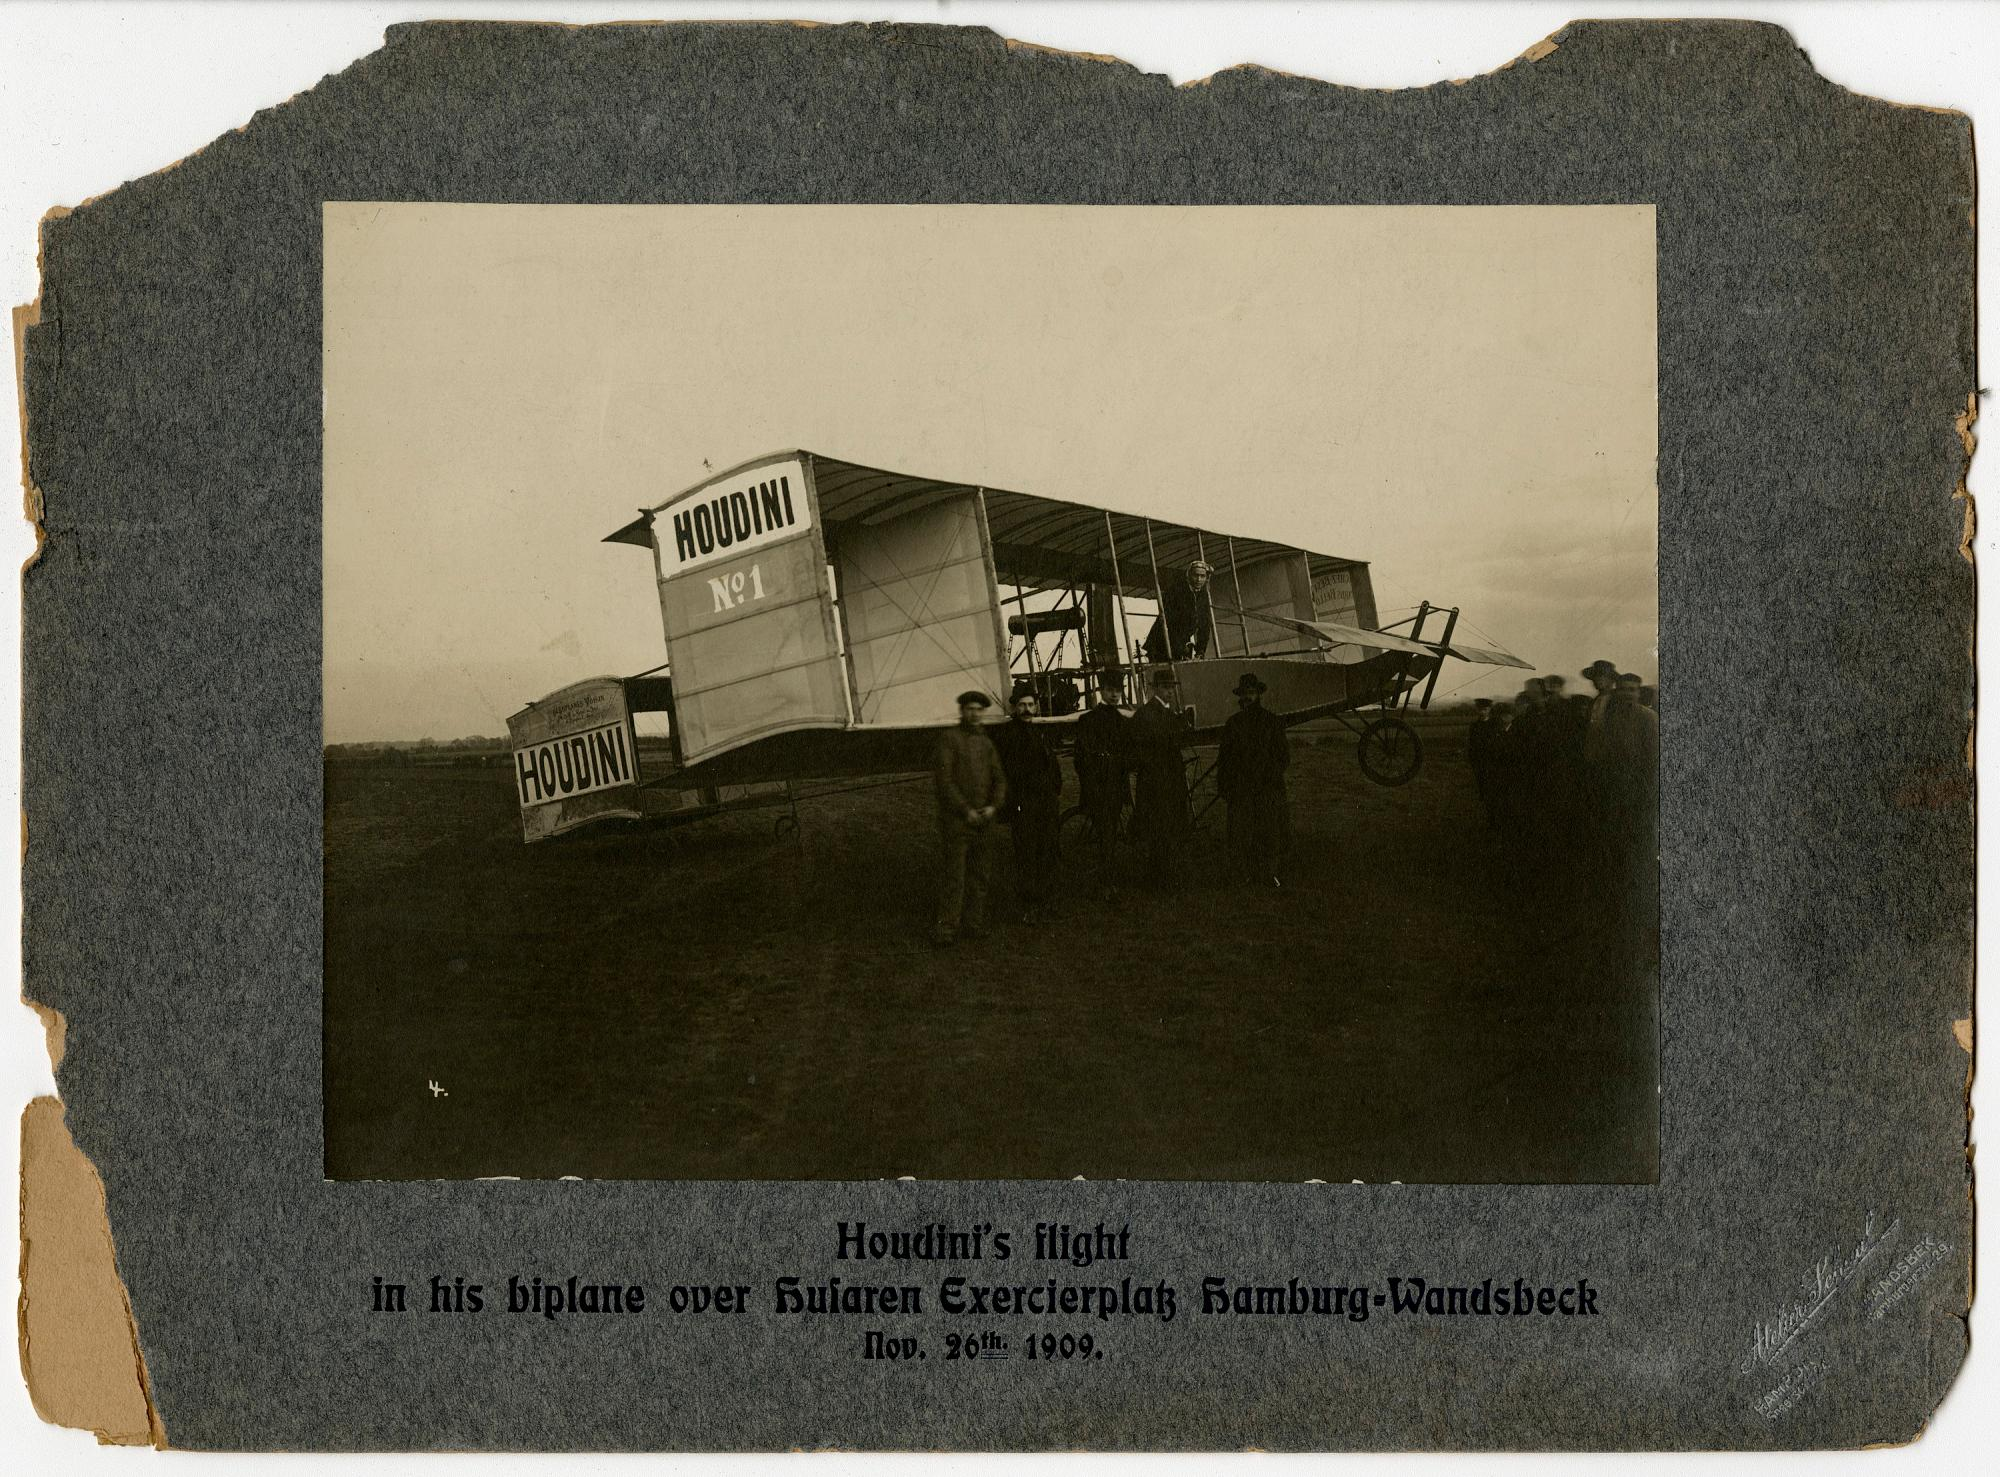 Harry Houdini biplane